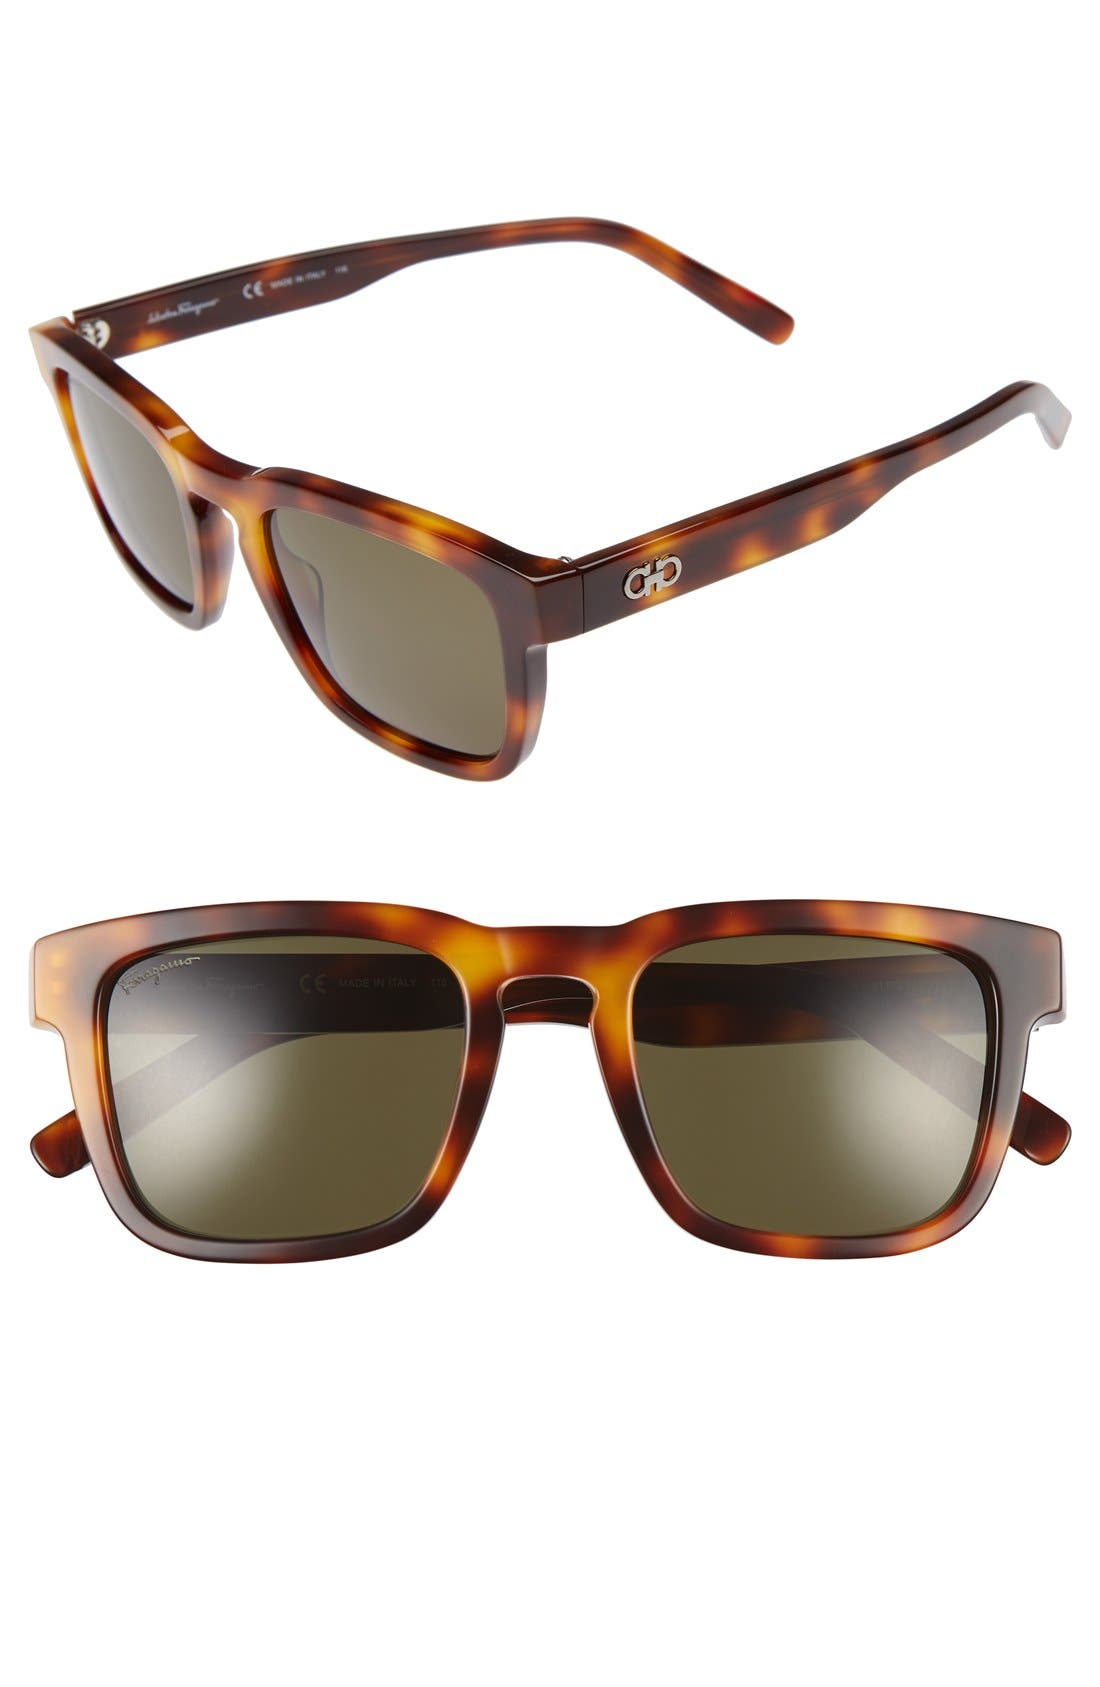 Salvatore Ferragamo 51mm Square Sunglasses